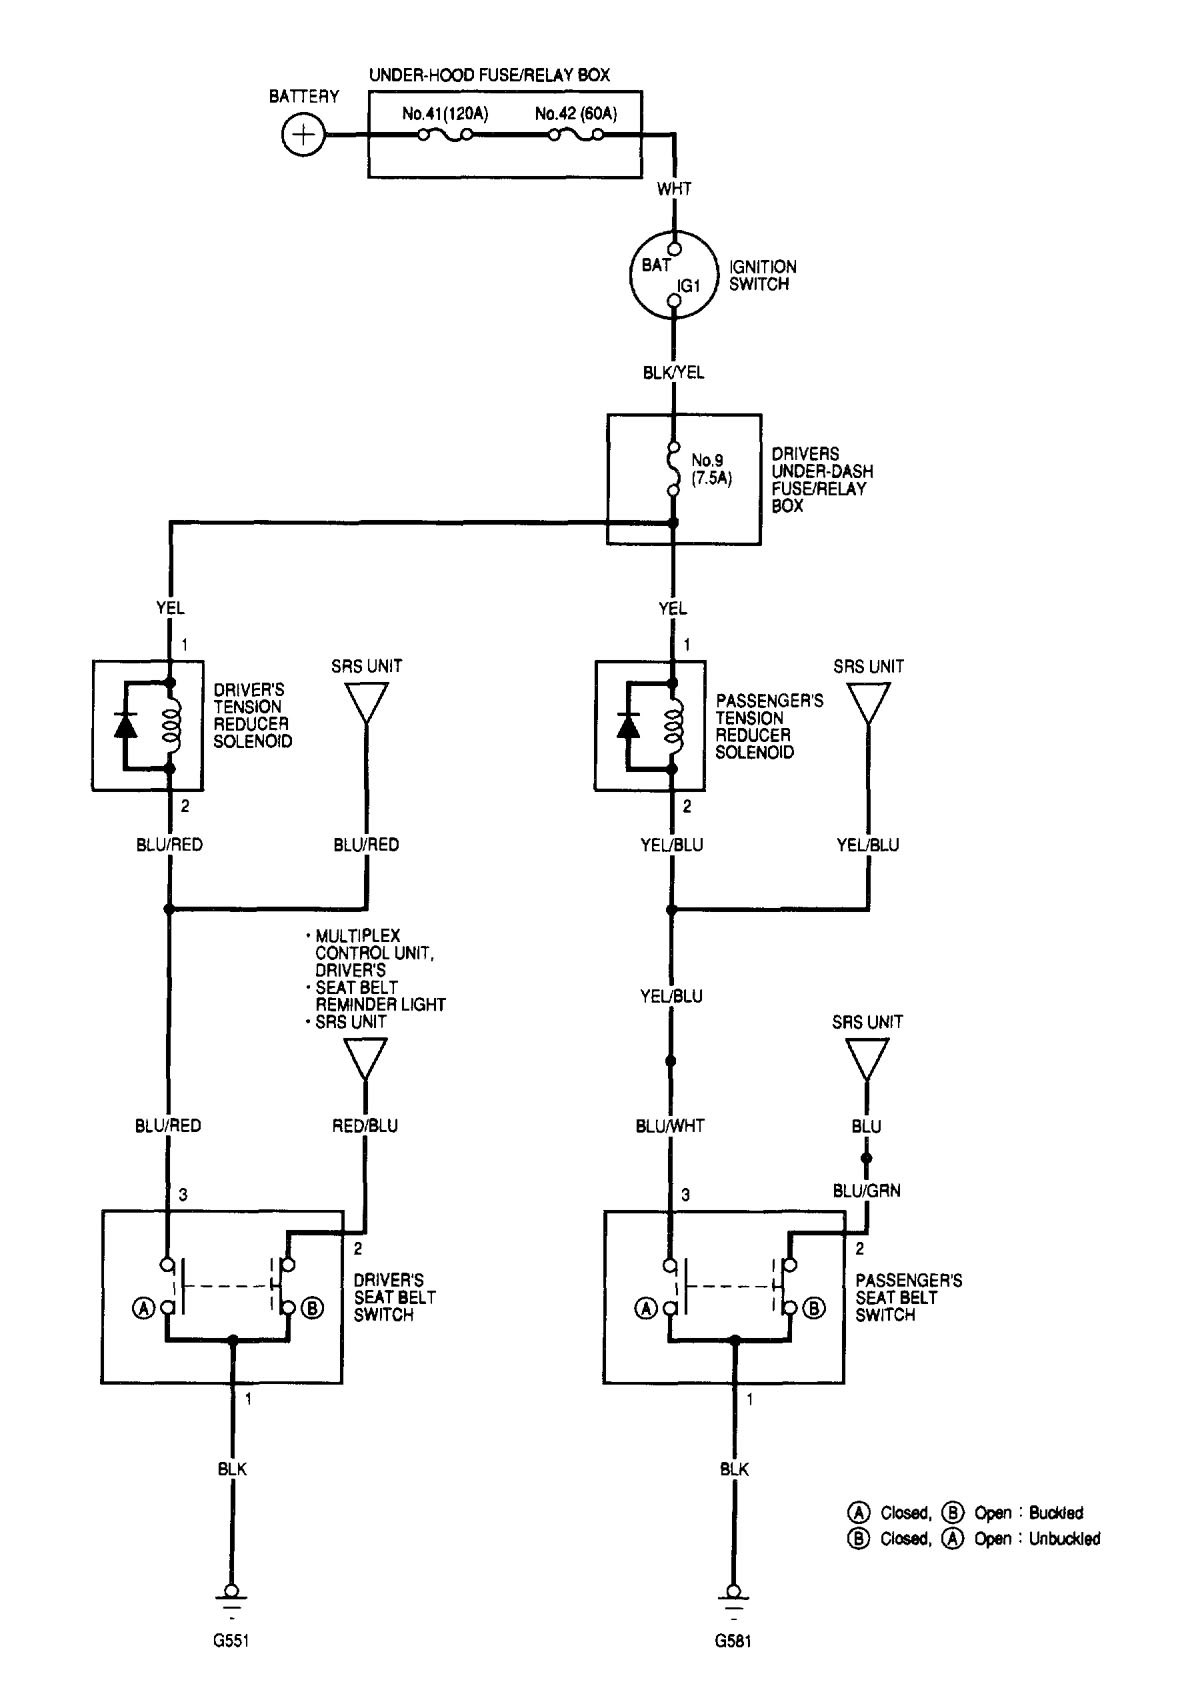 Acura Tl  2002  - Wiring Diagrams - Seat Belts